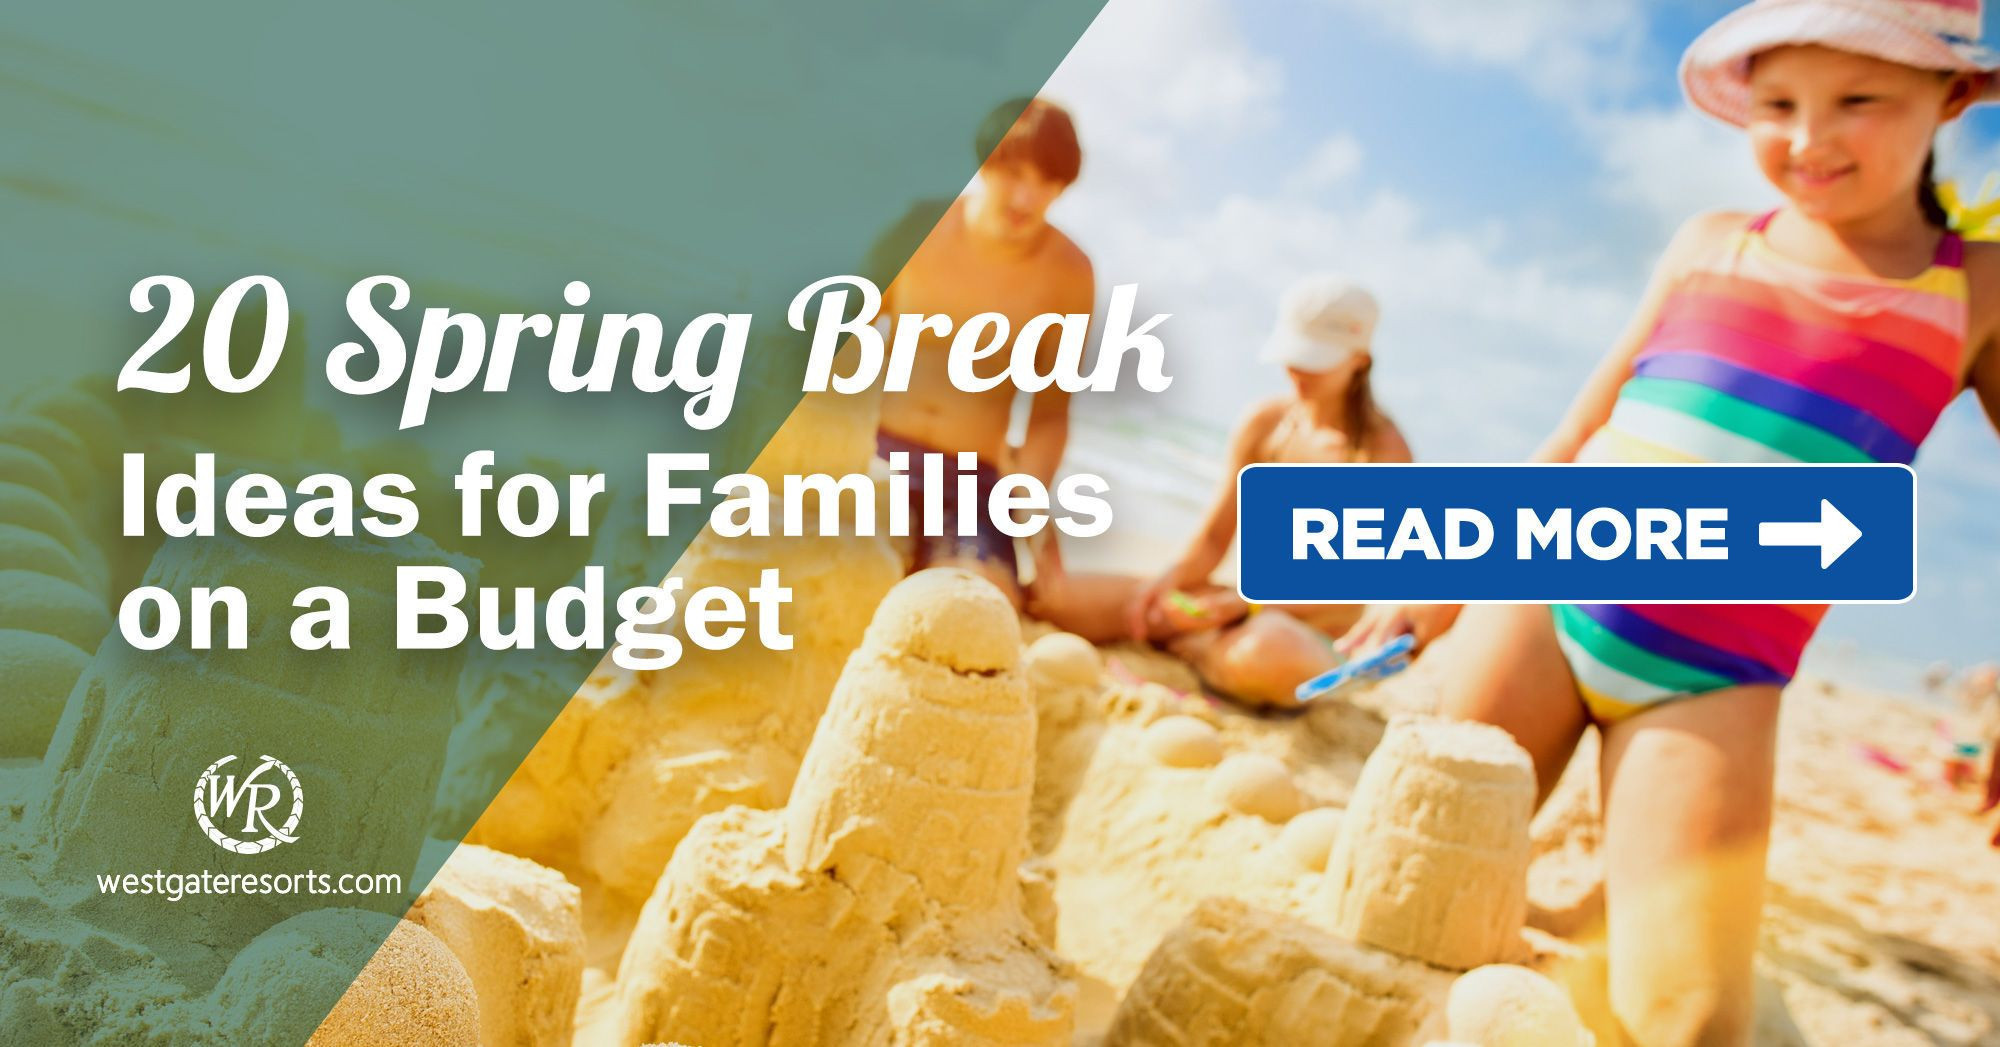 20 Spring Break Ideas for Families on a Budget